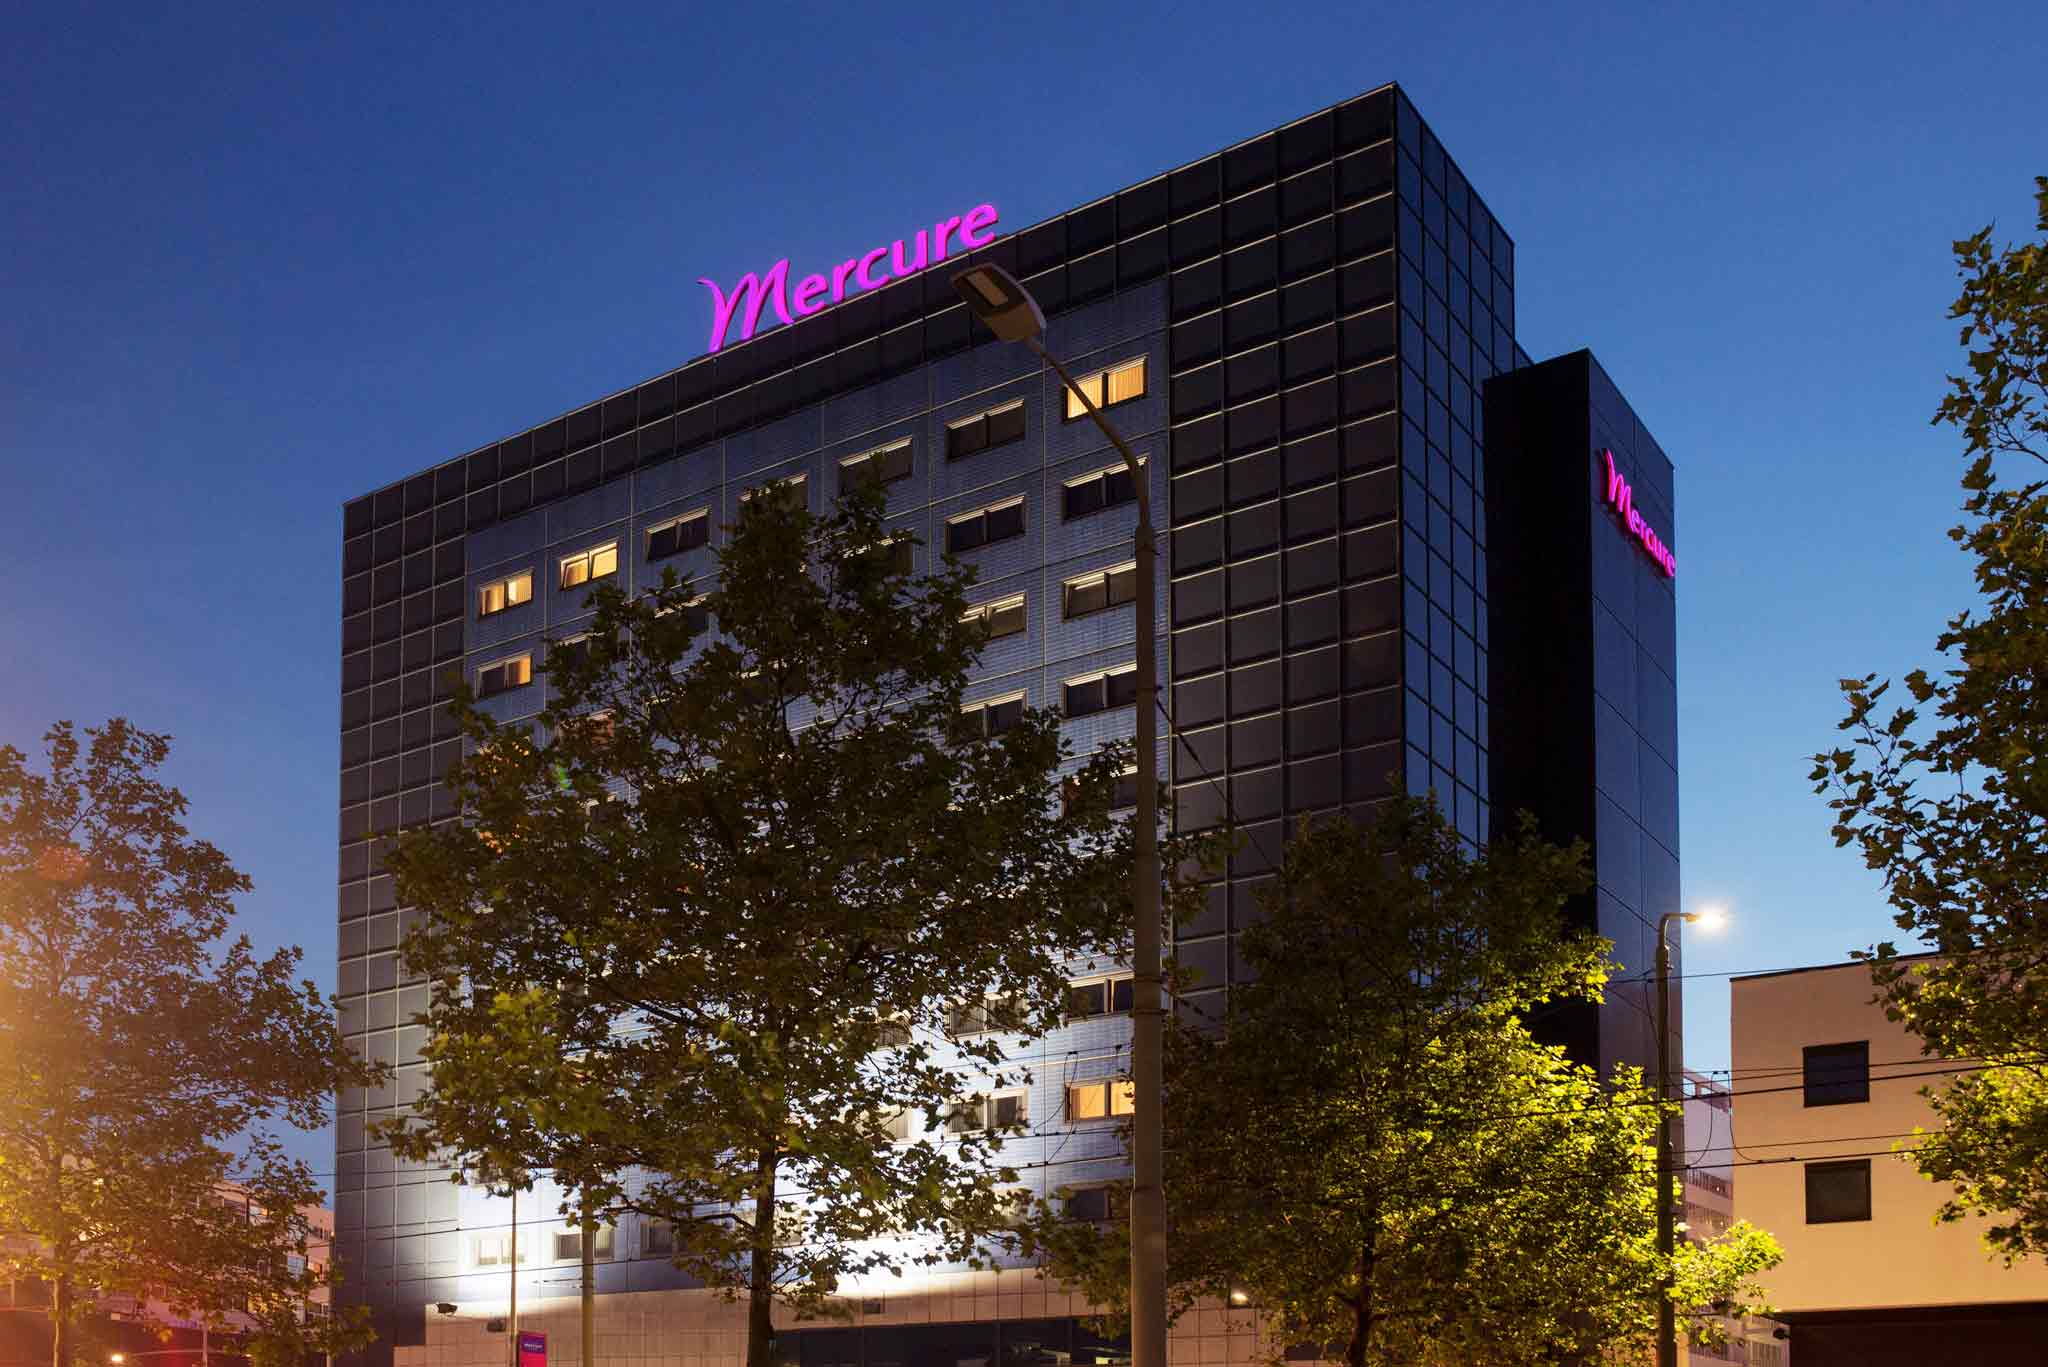 Mercure Den Haag Central Vista exterior